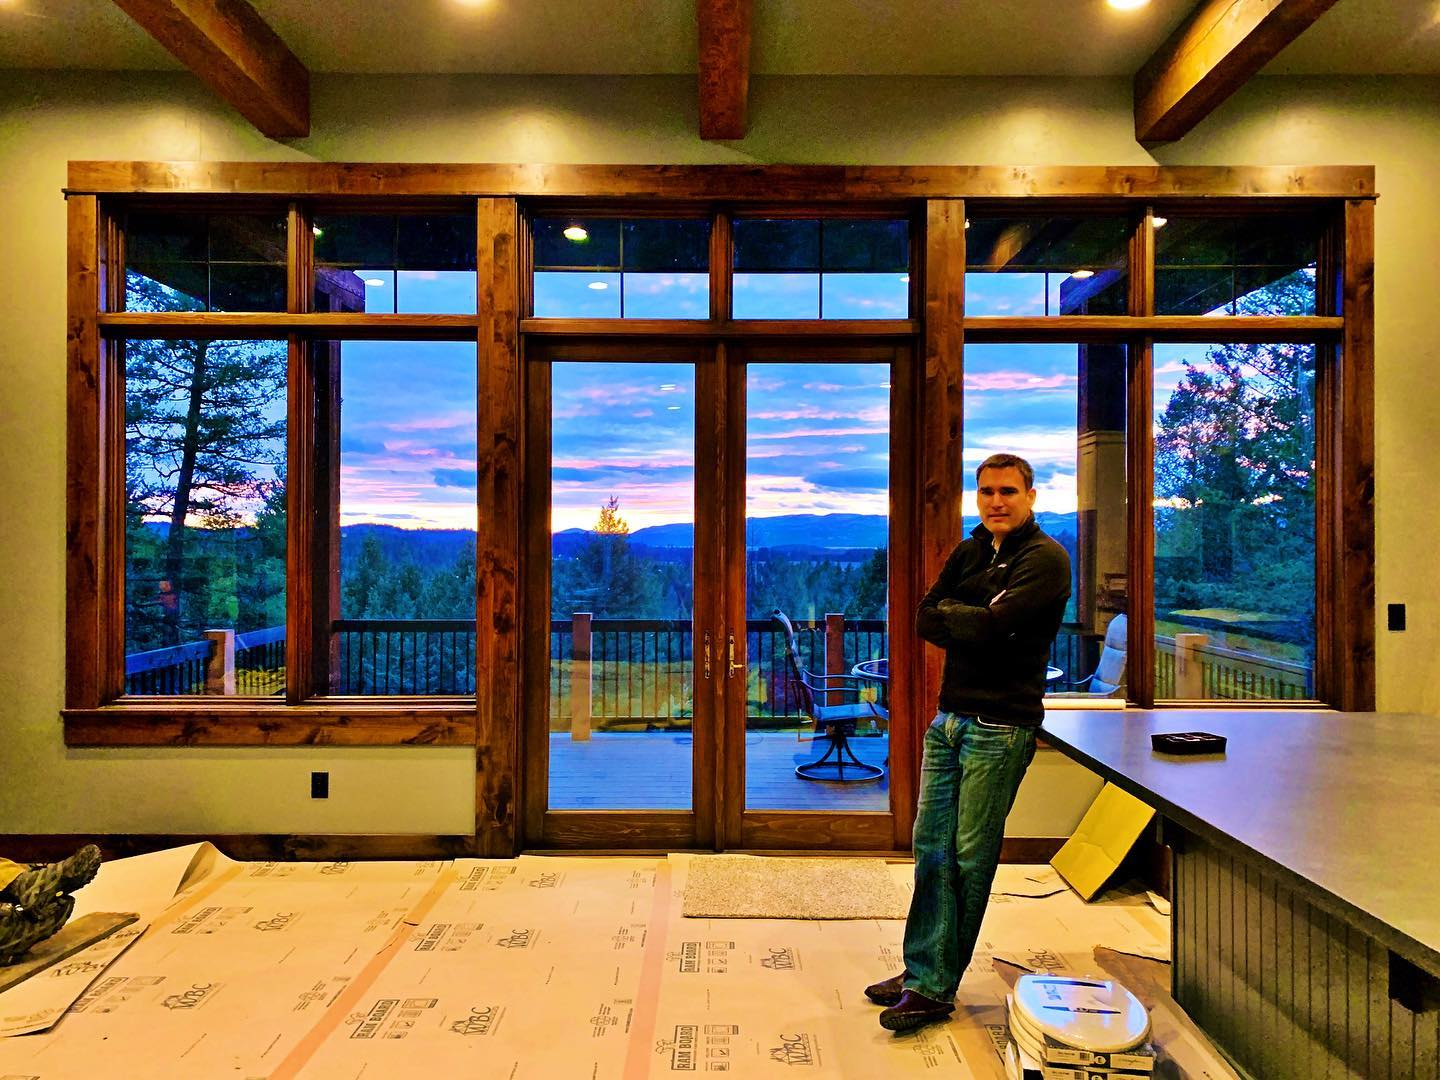 Yup. That's real. Final week wrap up (notice the toilet seats on the floor ) whitefish custom home builder